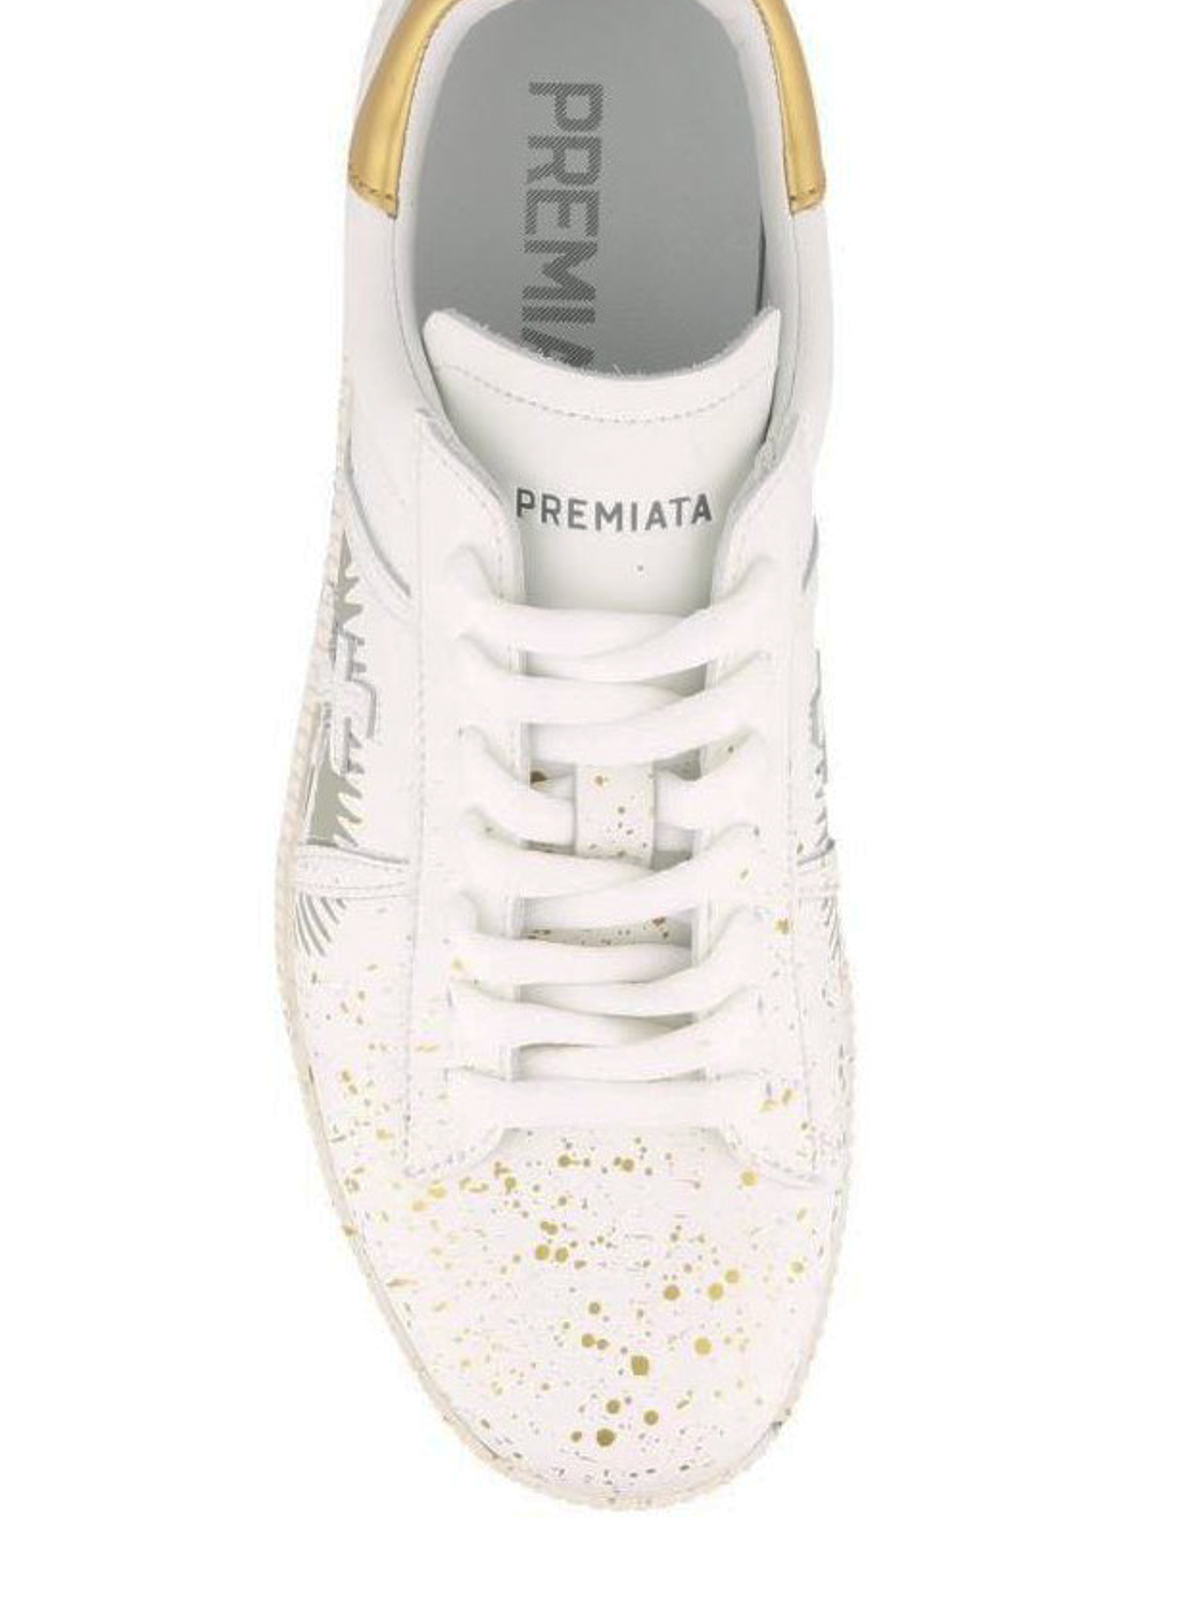 002301e5ec61d7 iKRIX-premiata-trainers-andyd-white-and-gold-sneakers-00000141043f00s003.jpg